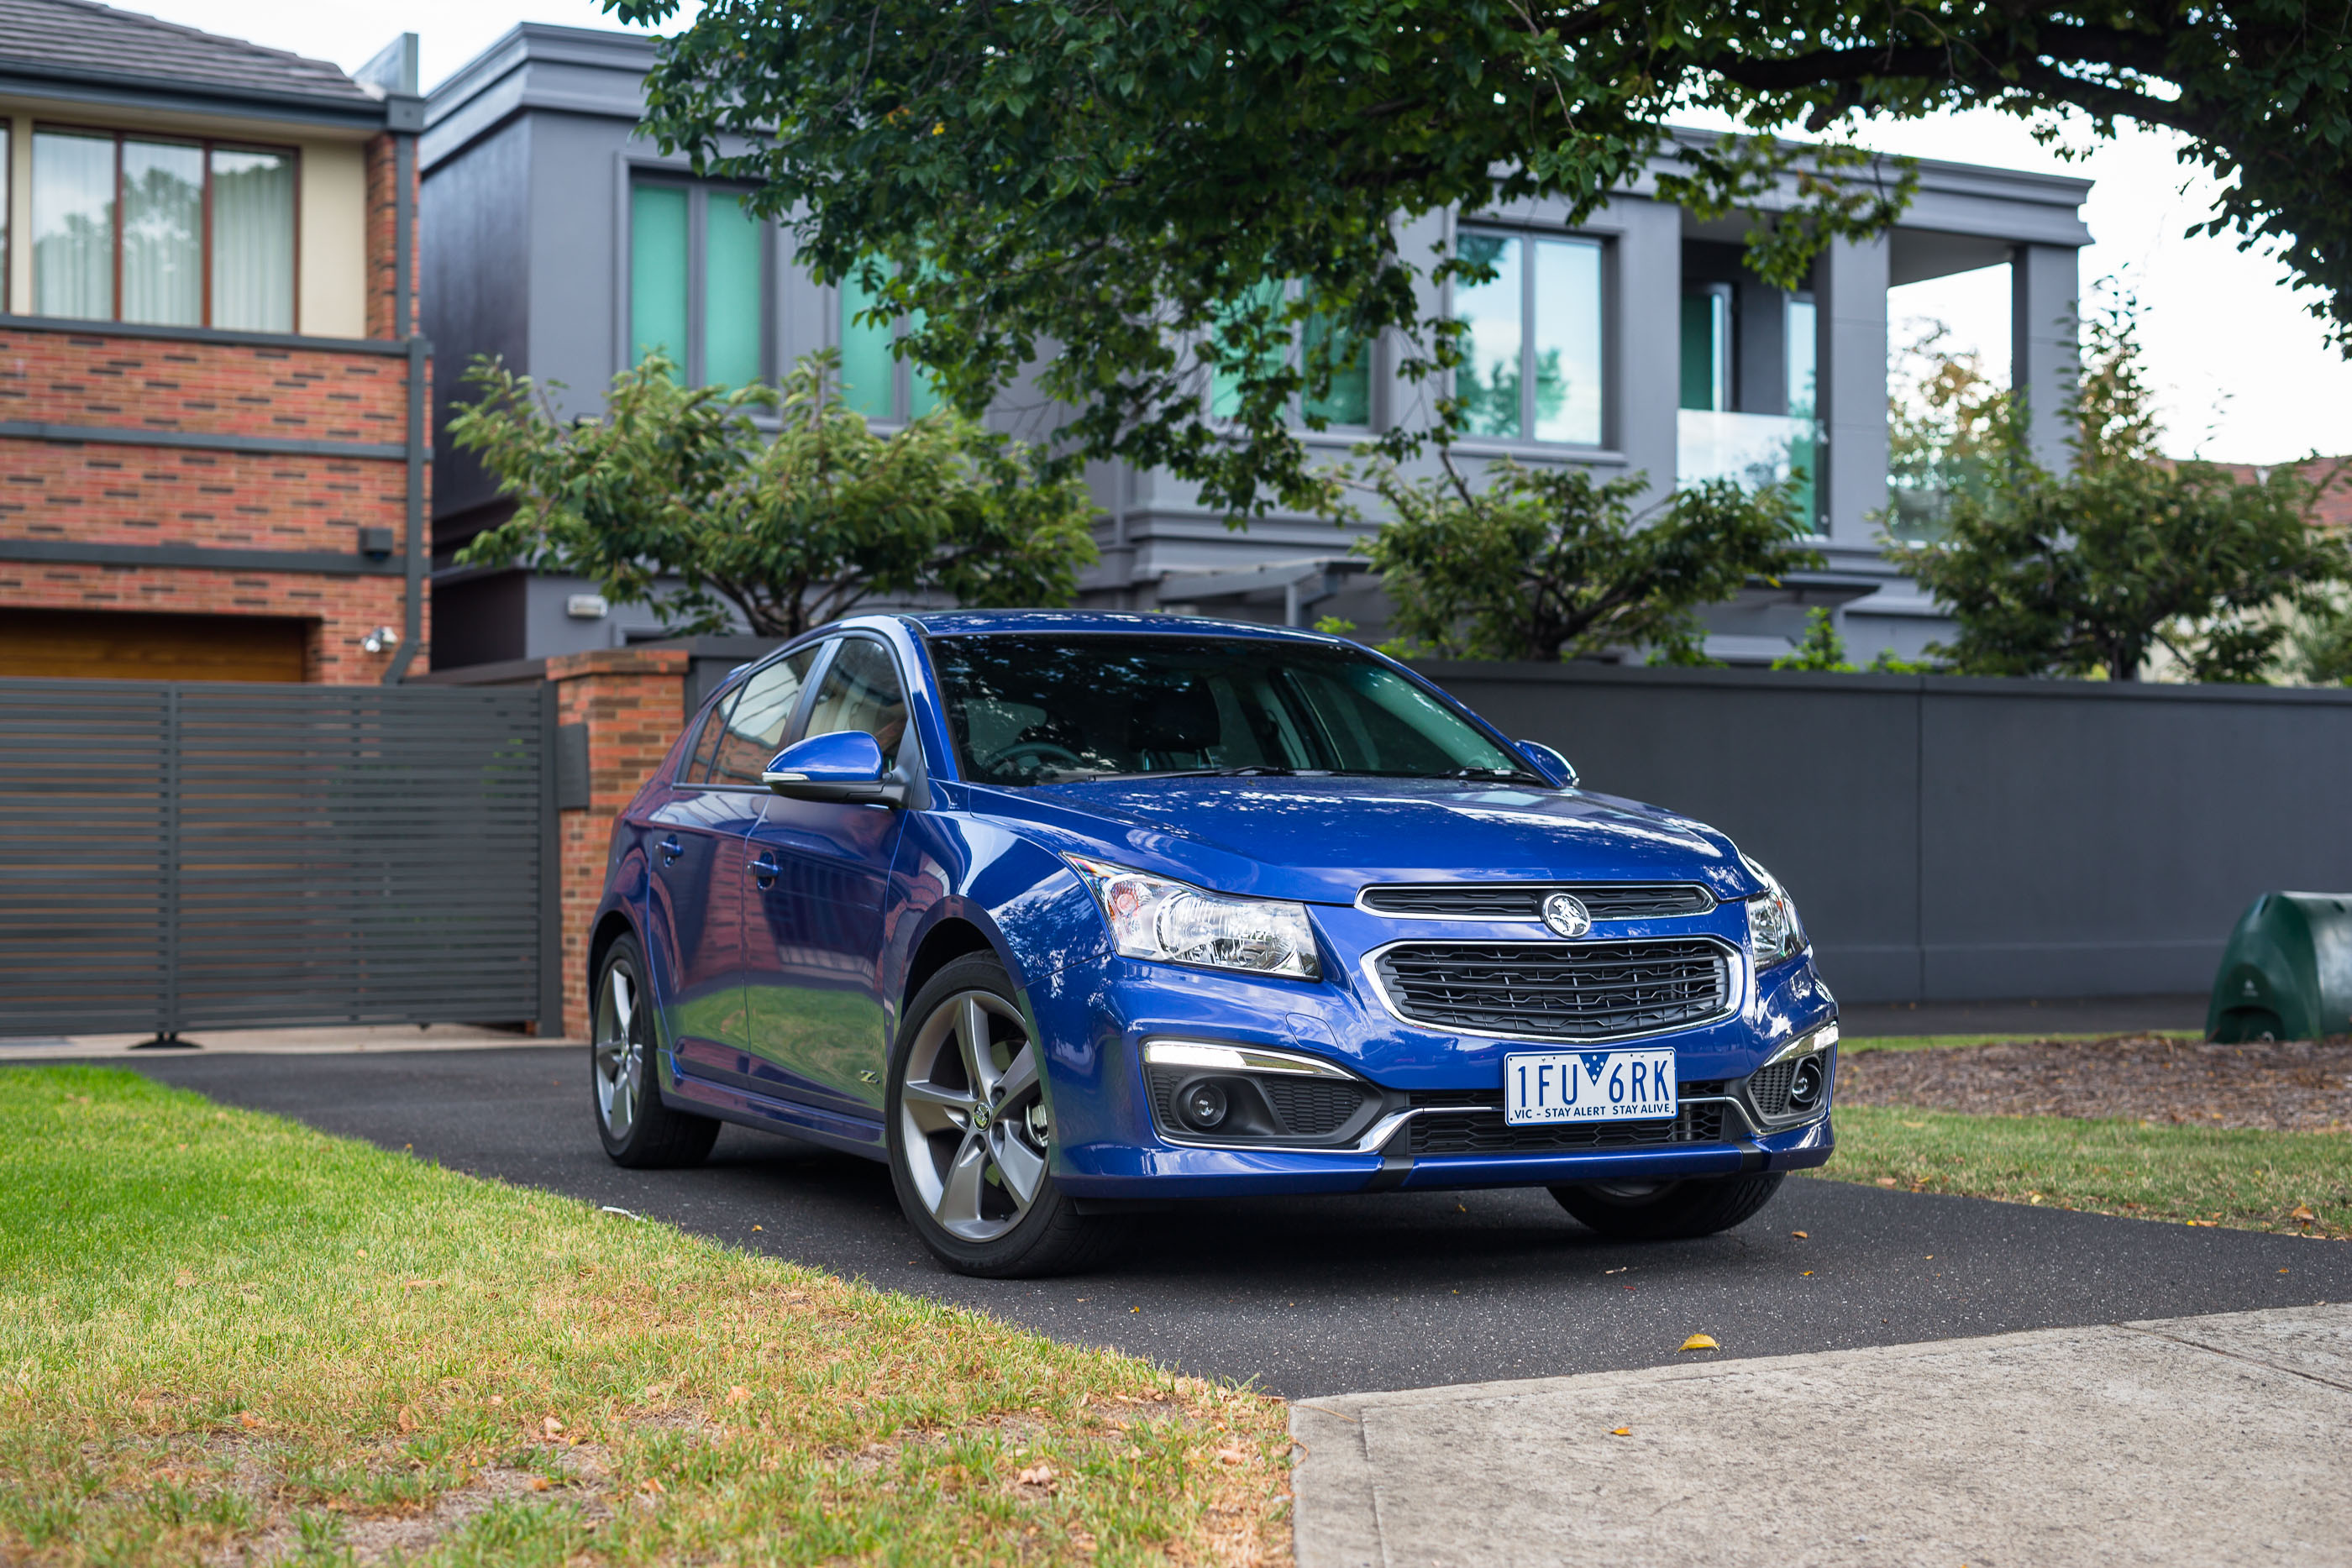 2016 holden cruze sri z series hatch review caradvice 2016 holden cruze sri z series hatch review vanachro Images